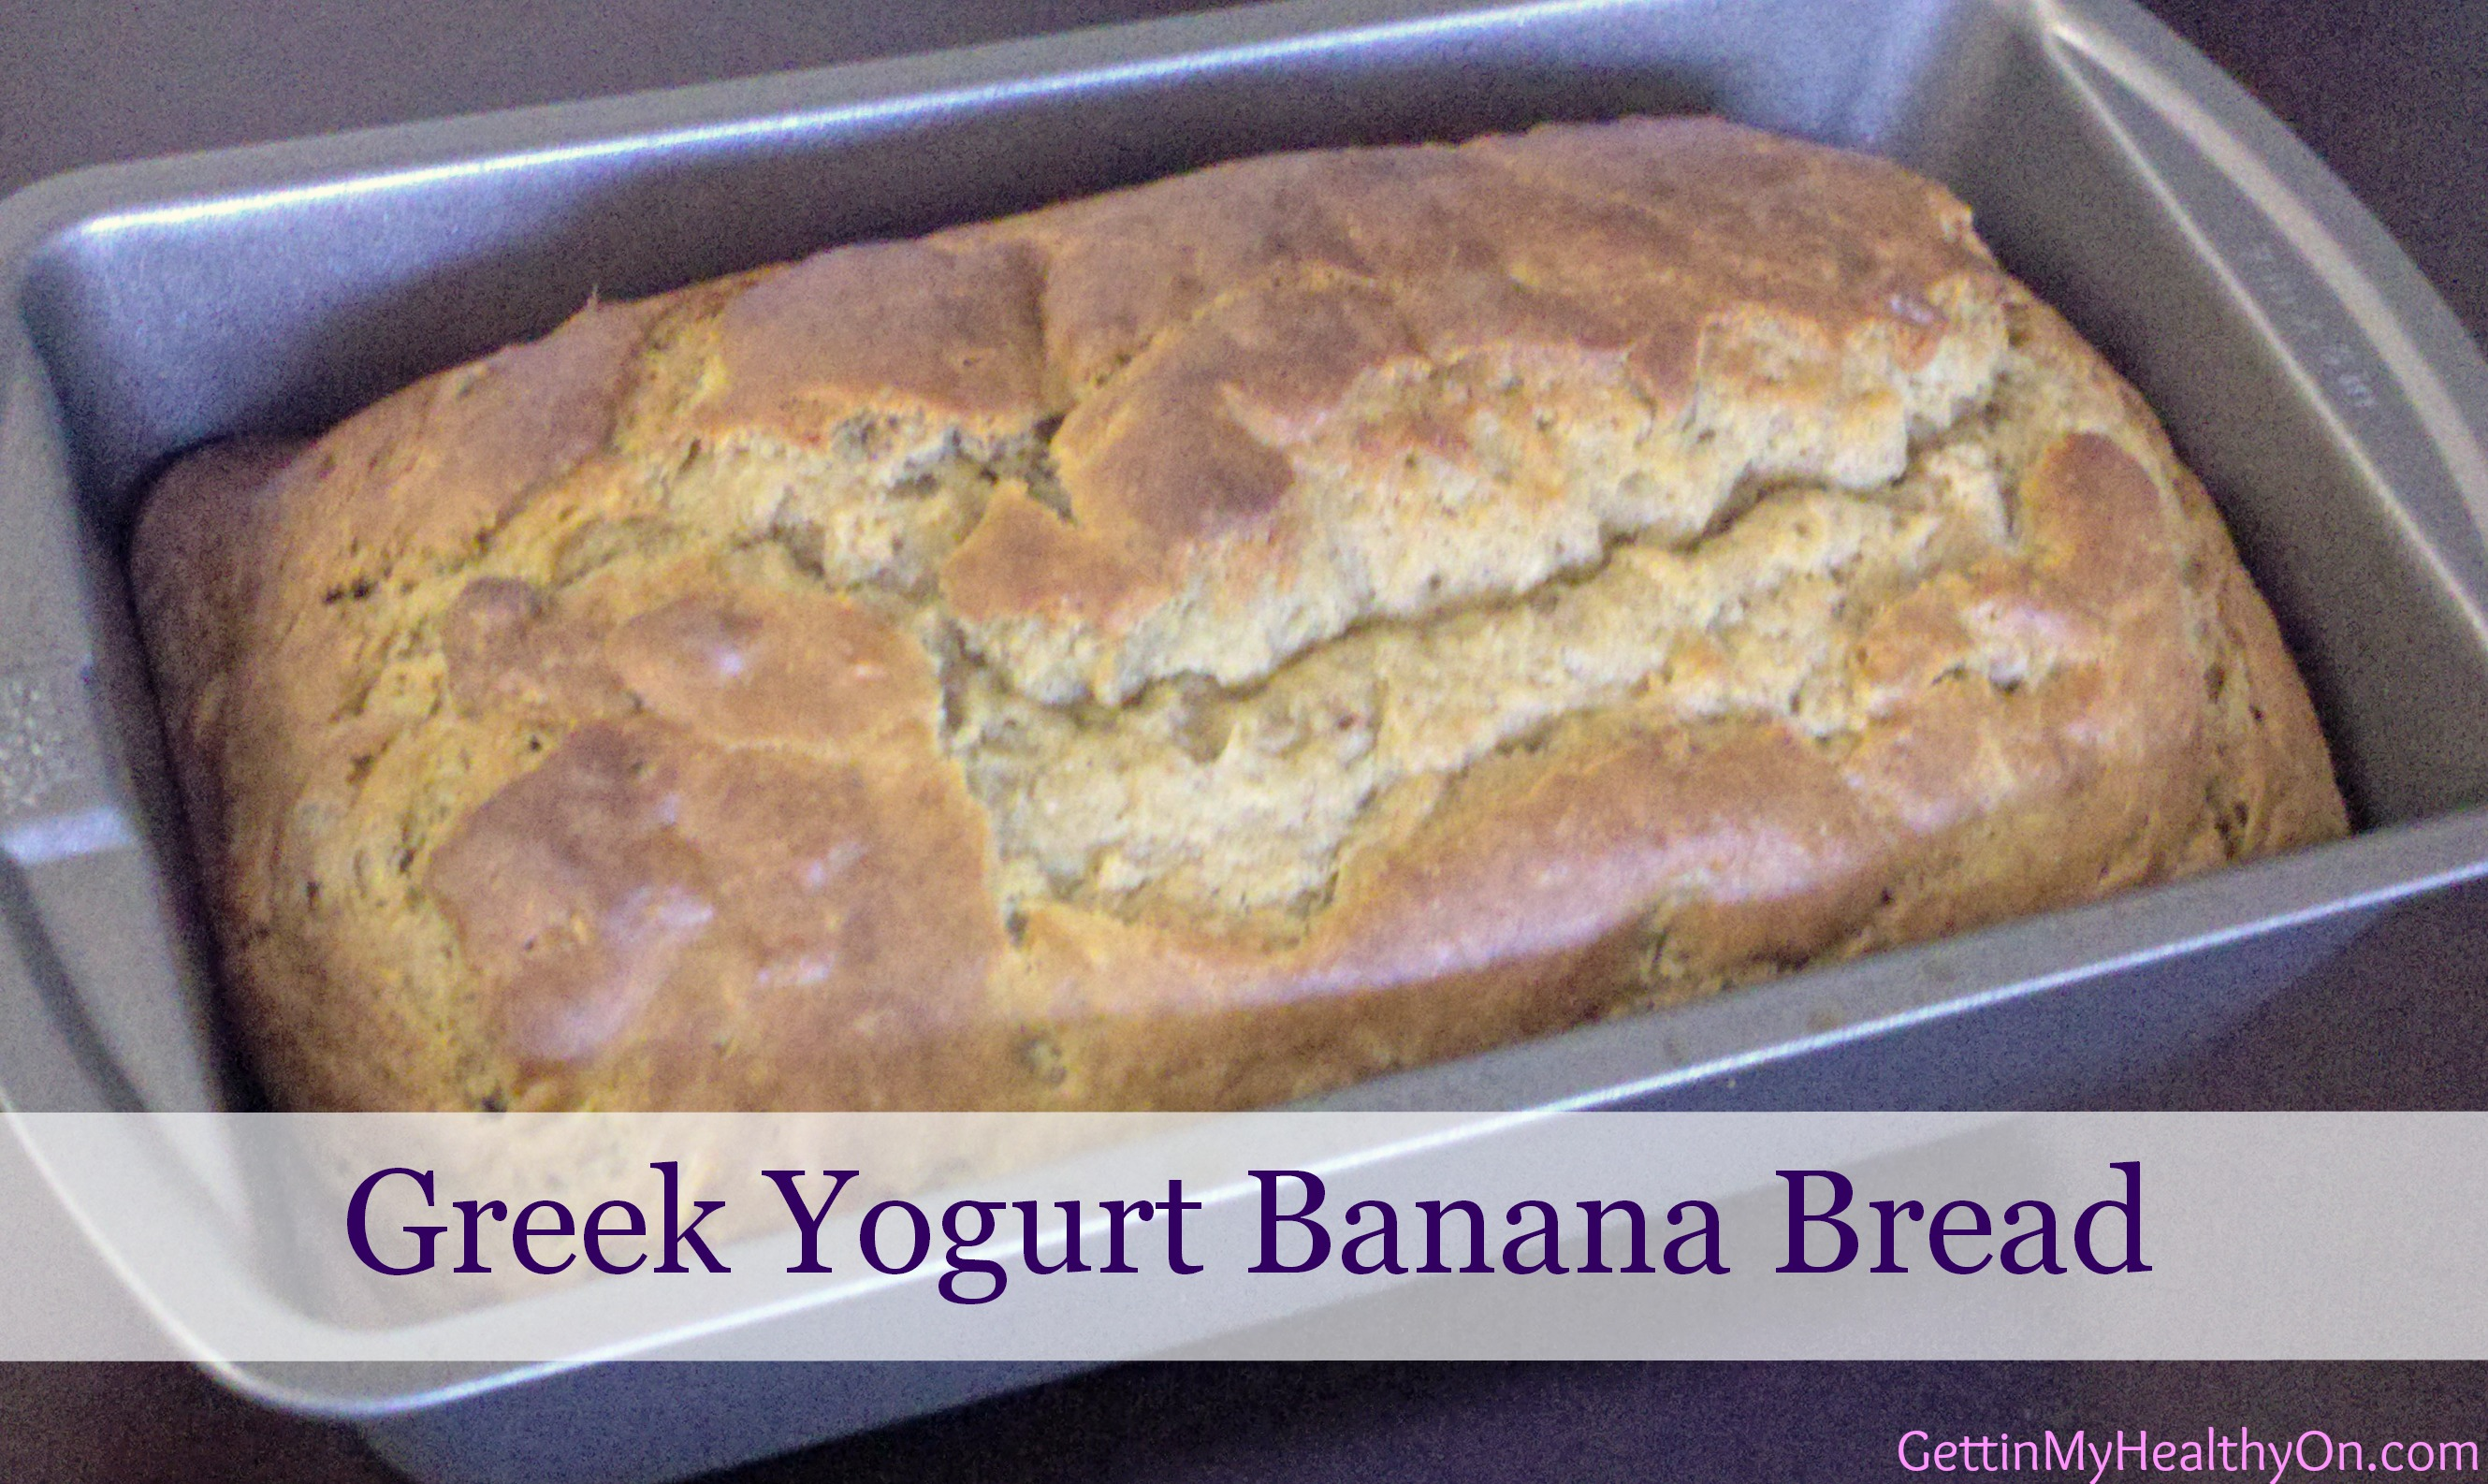 Tasty Tuesday: Greek Yogurt Banana Bread